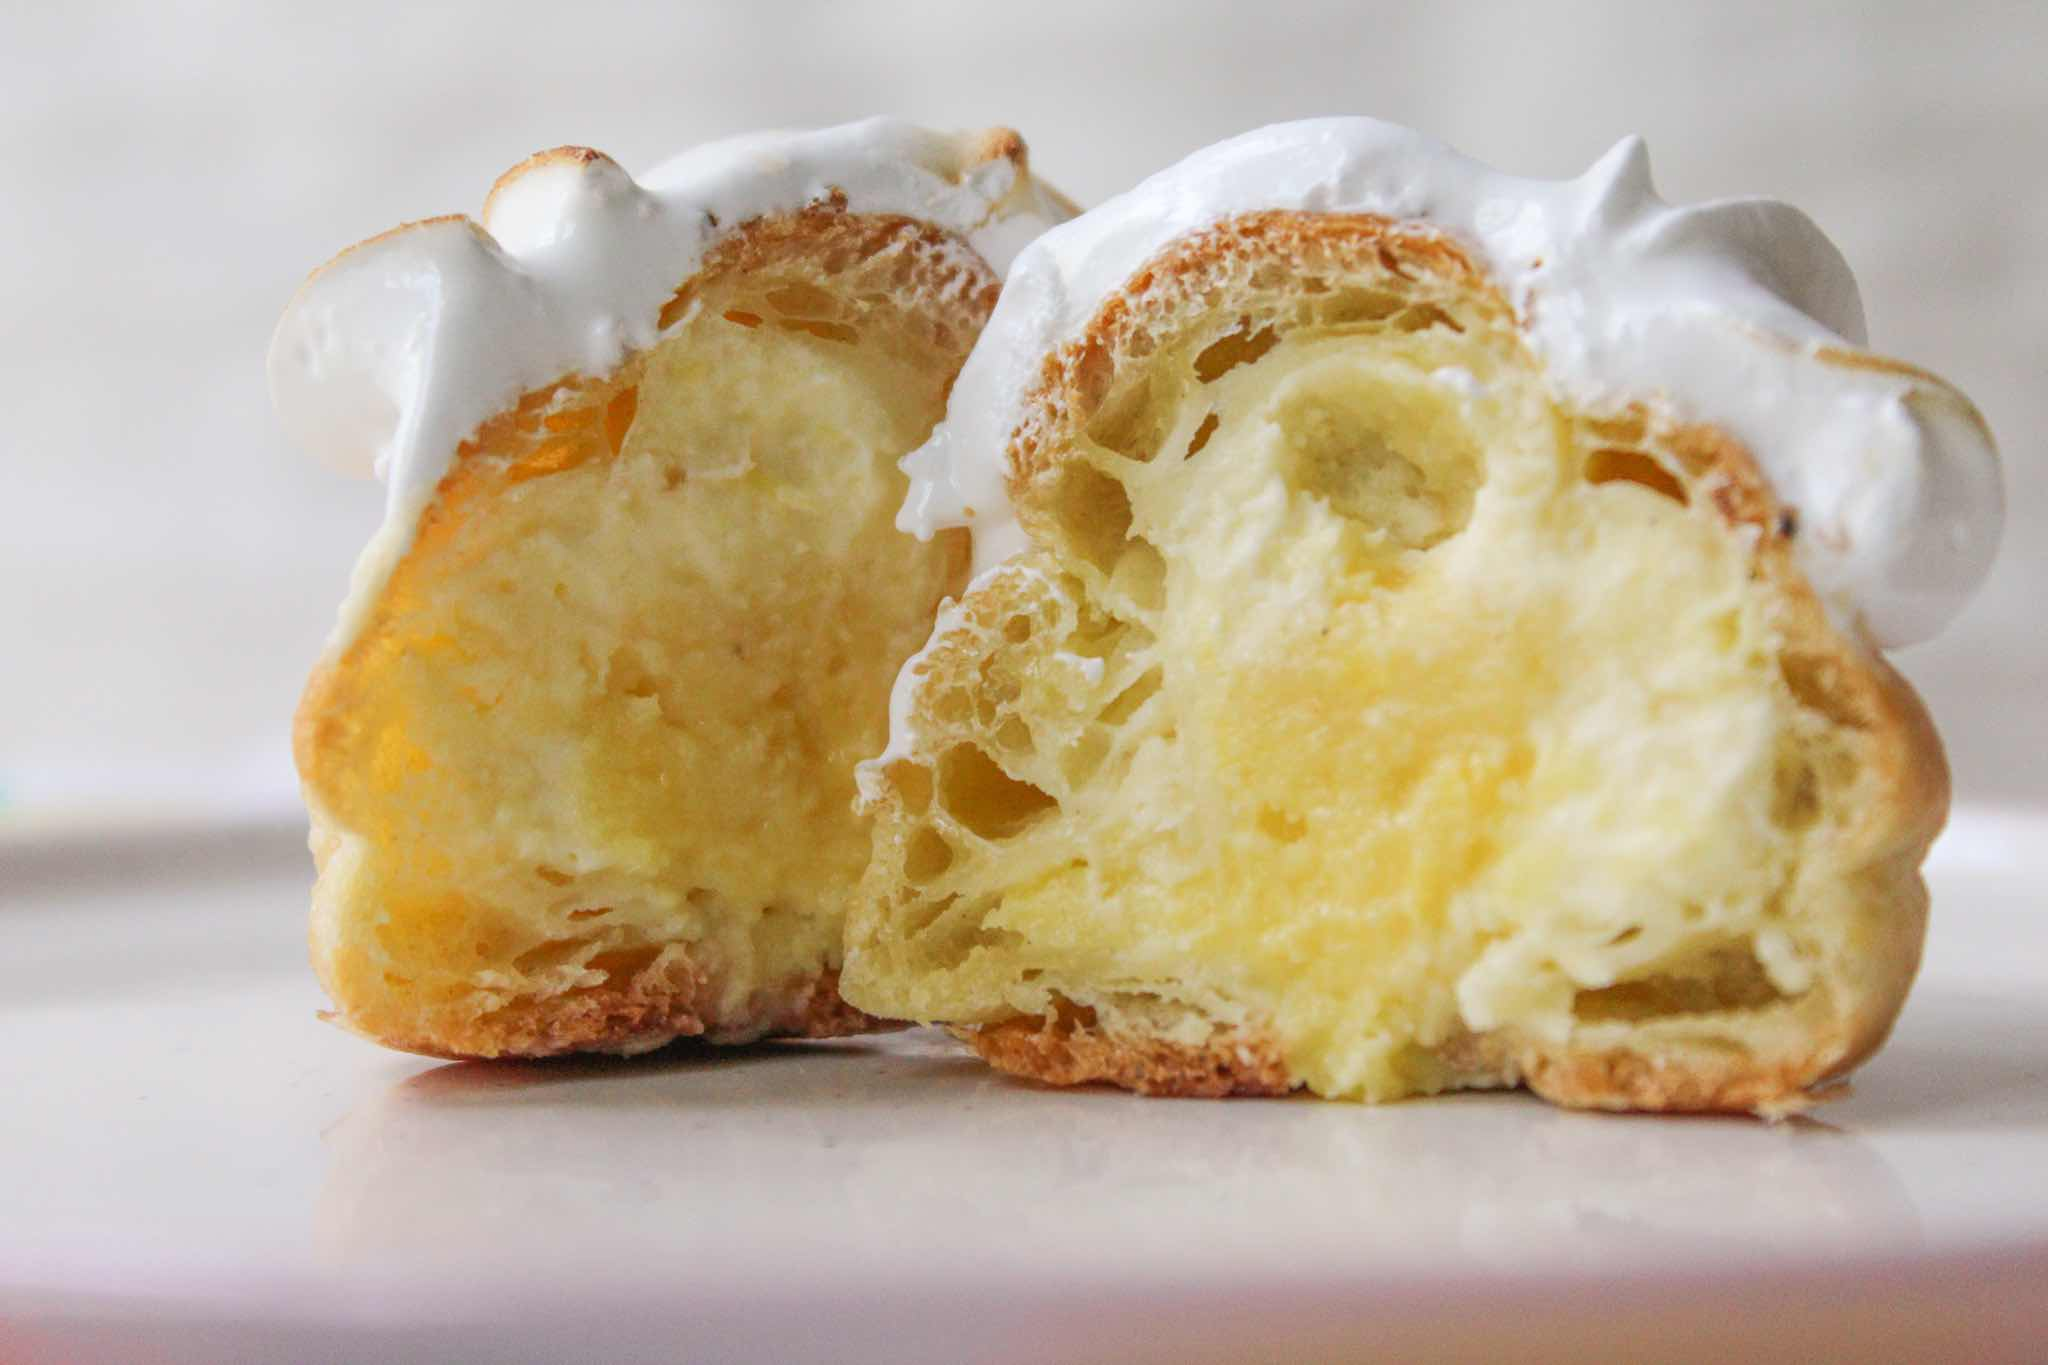 Lemon Meringue Cream Puffs - Filled with Lemon Whipped Cream and Lemon Curd